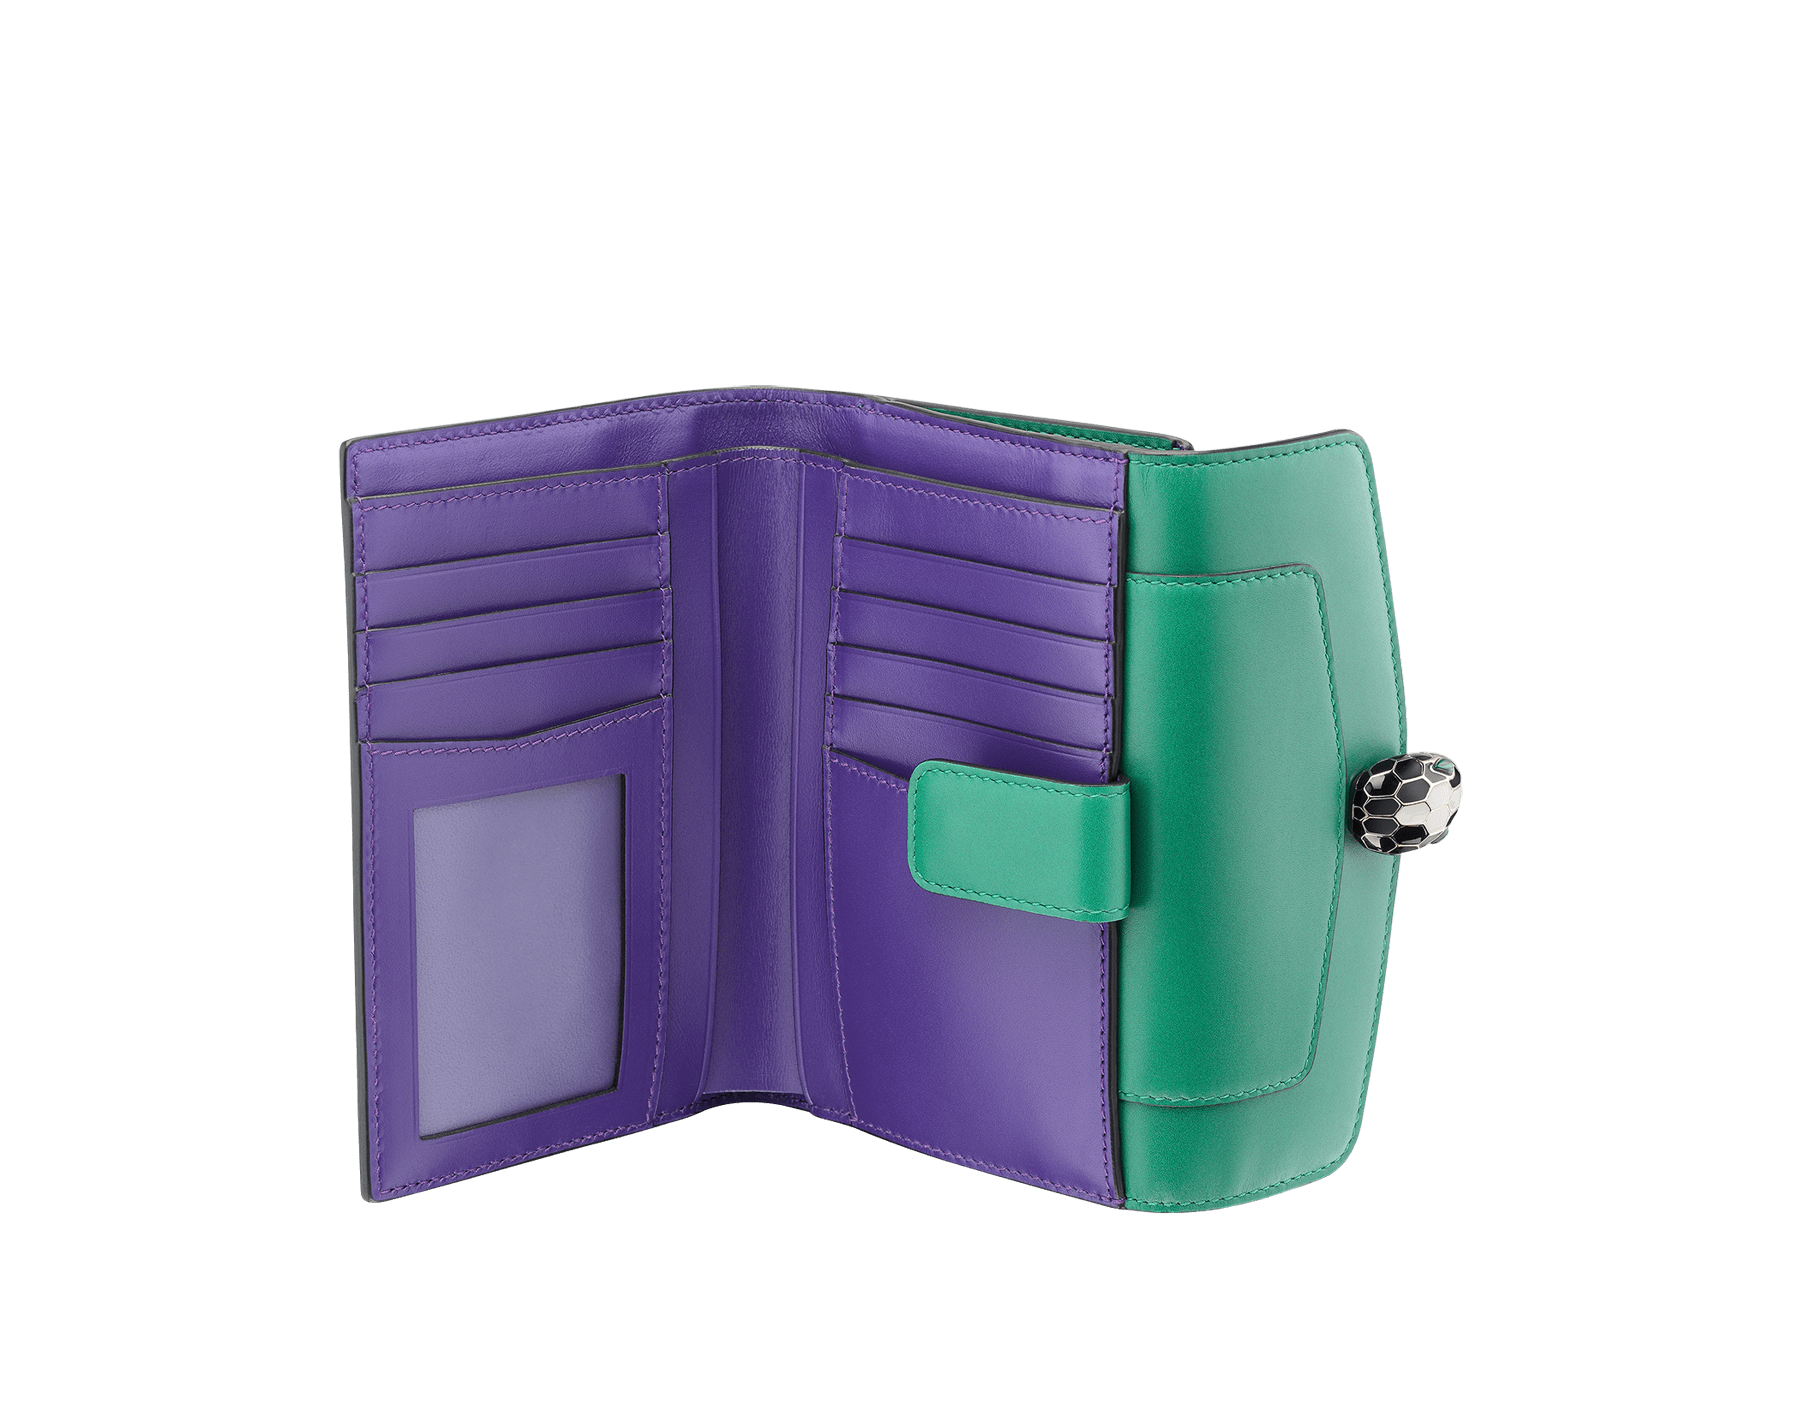 Compact pochette in royal sapphire calf leather, teal topaz calf leather and plum amethyst nappa lining. Brass light gold plated Serpenti head stud closure with green malachite eyes. SEA-COMPPOCHETTE image 2